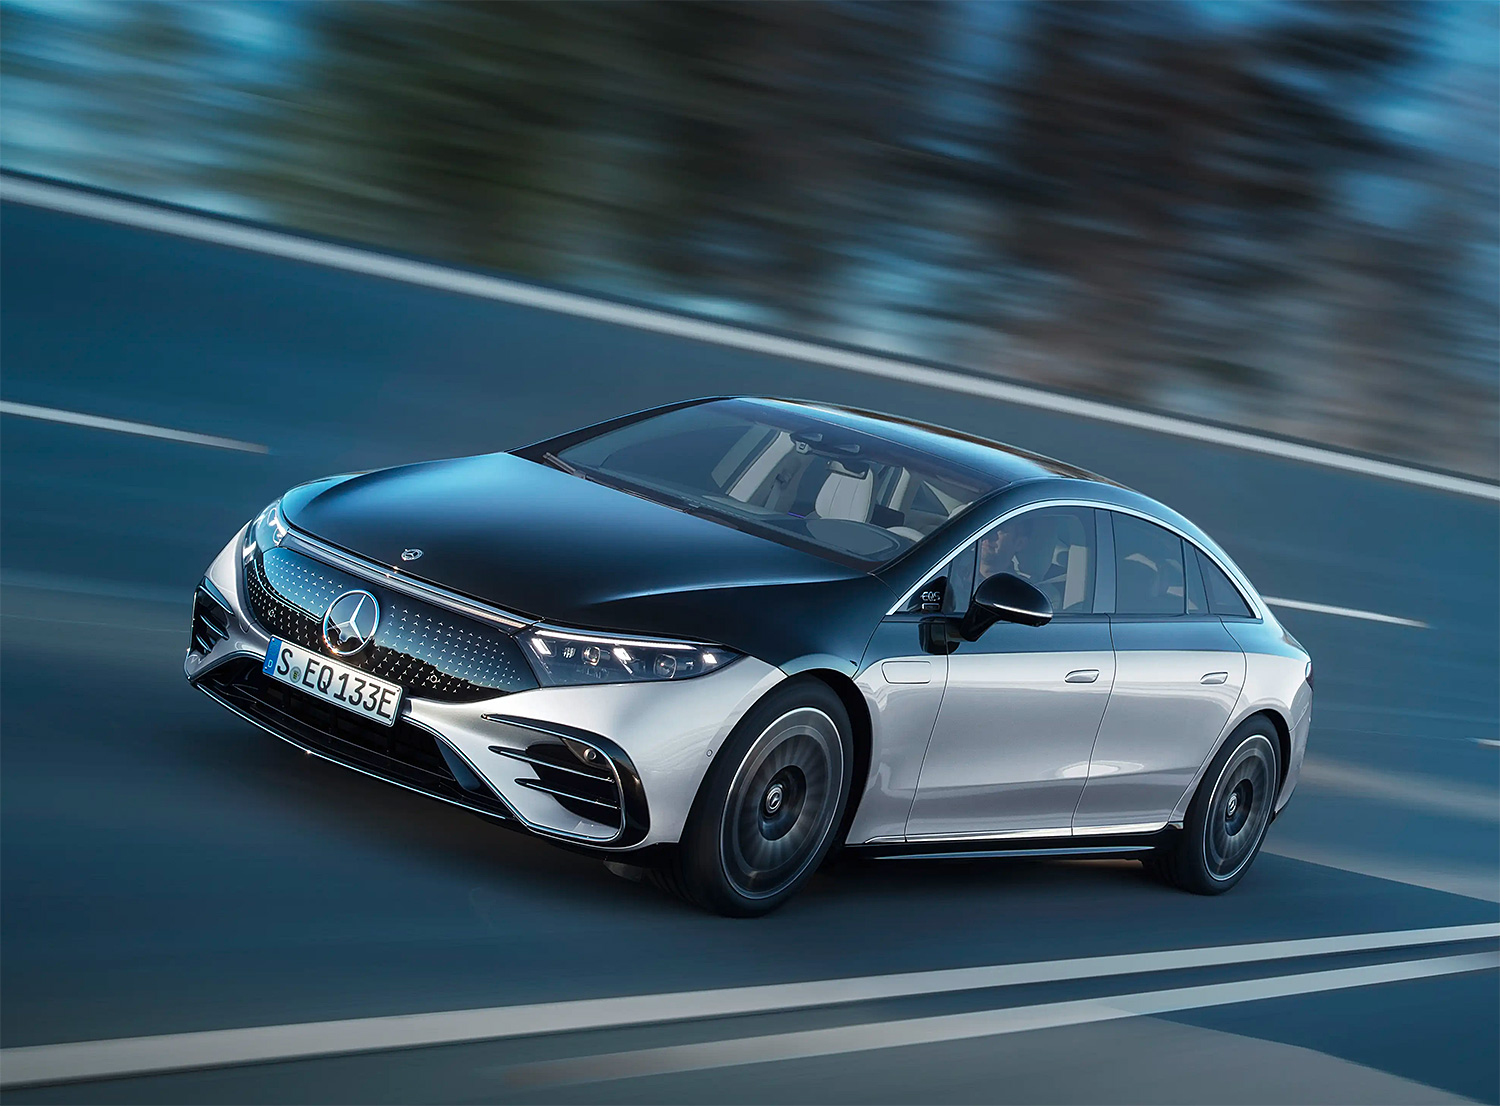 Mercedes-Benz Rolls Out 2022 EQS Electric Sedan at werd.com